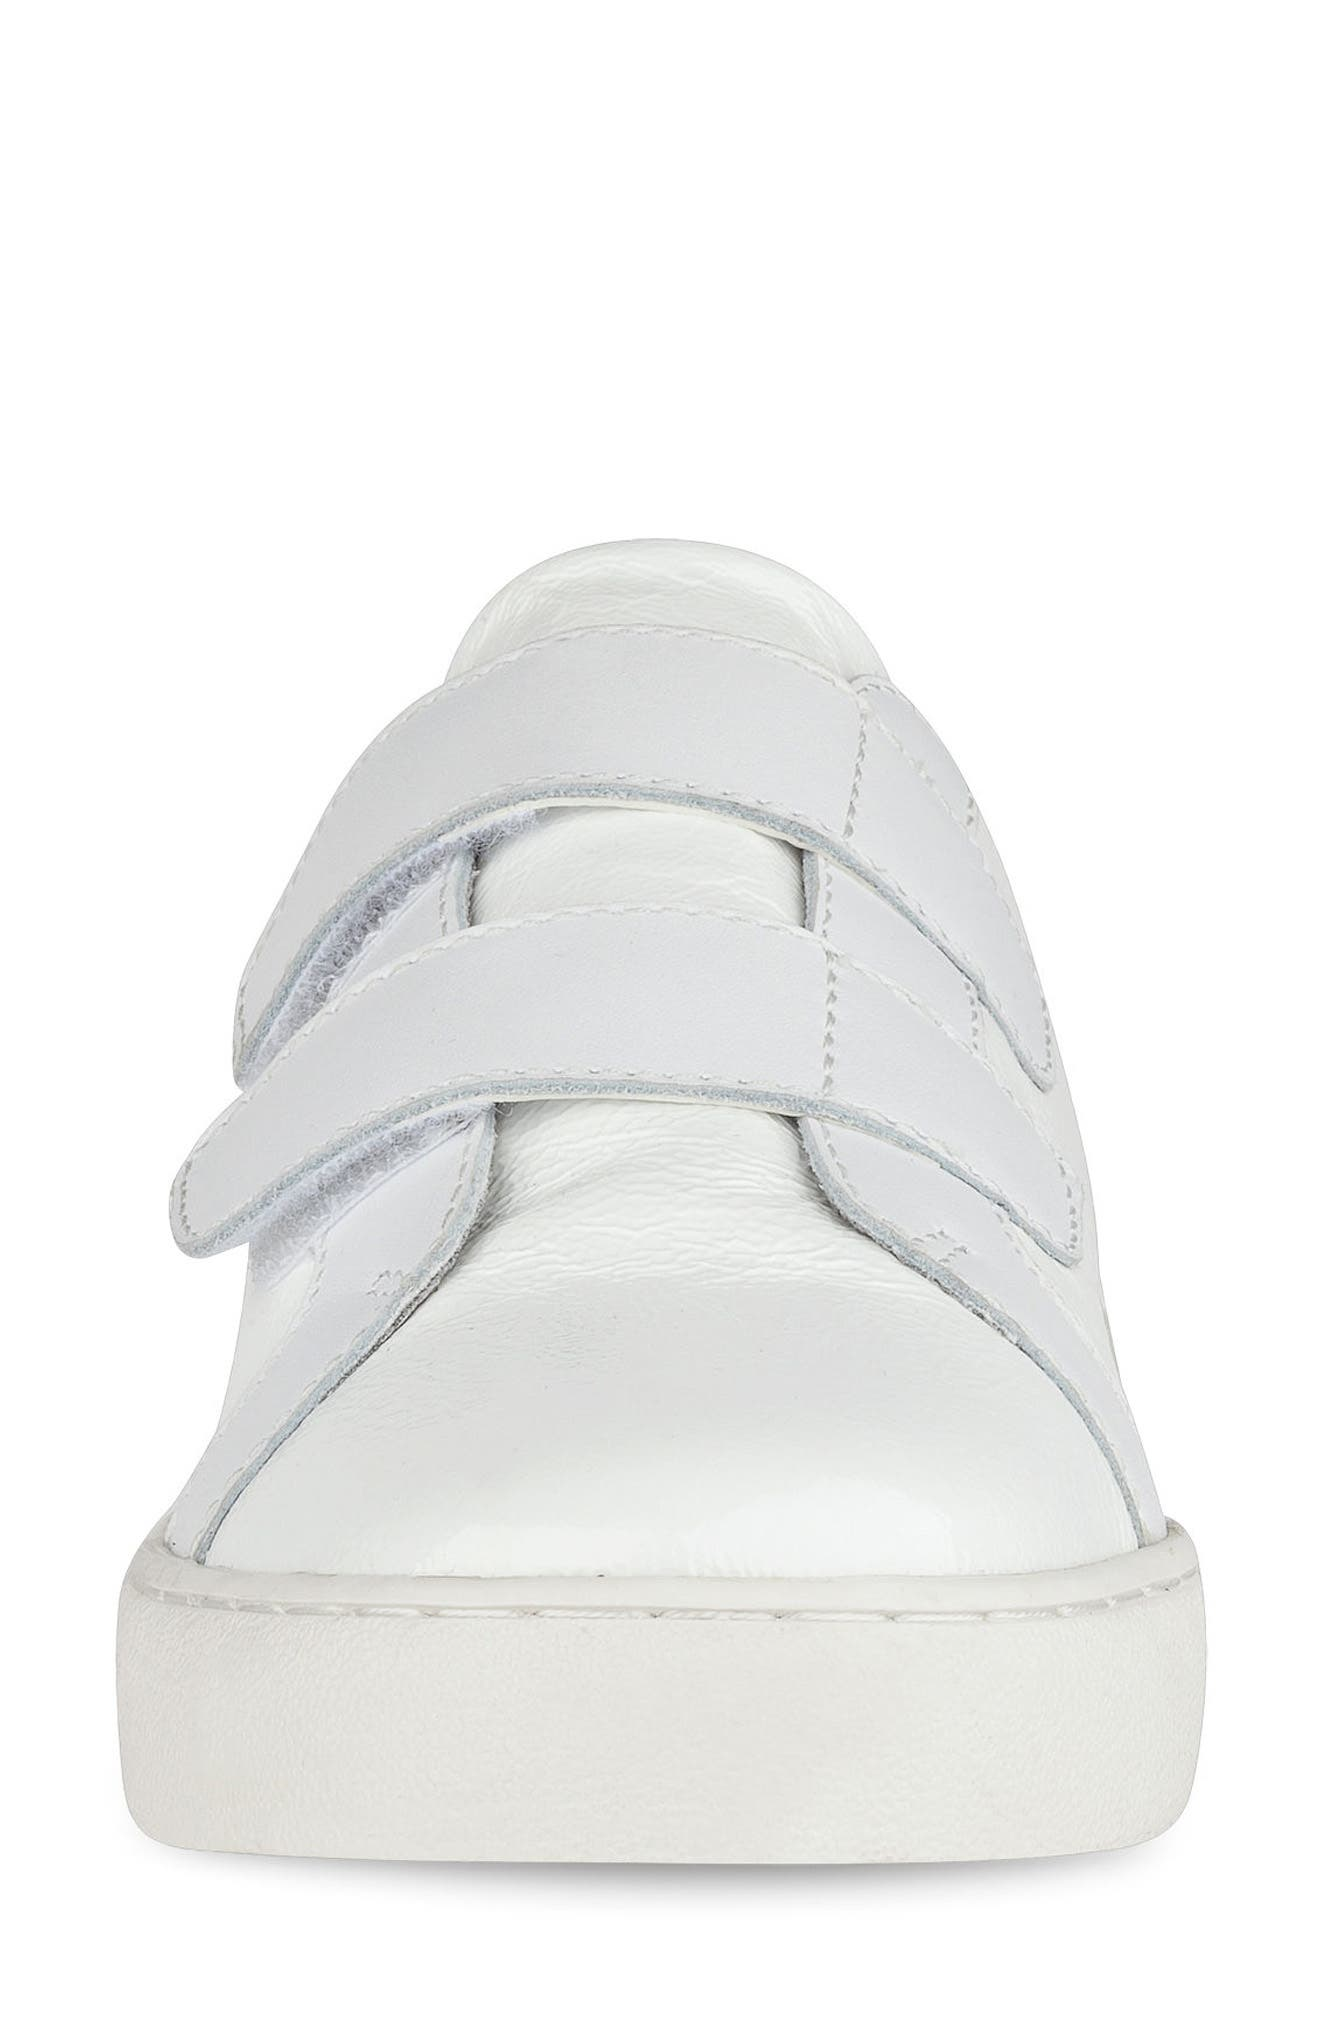 Poeton Sneaker Mule,                             Alternate thumbnail 4, color,                             White Leather